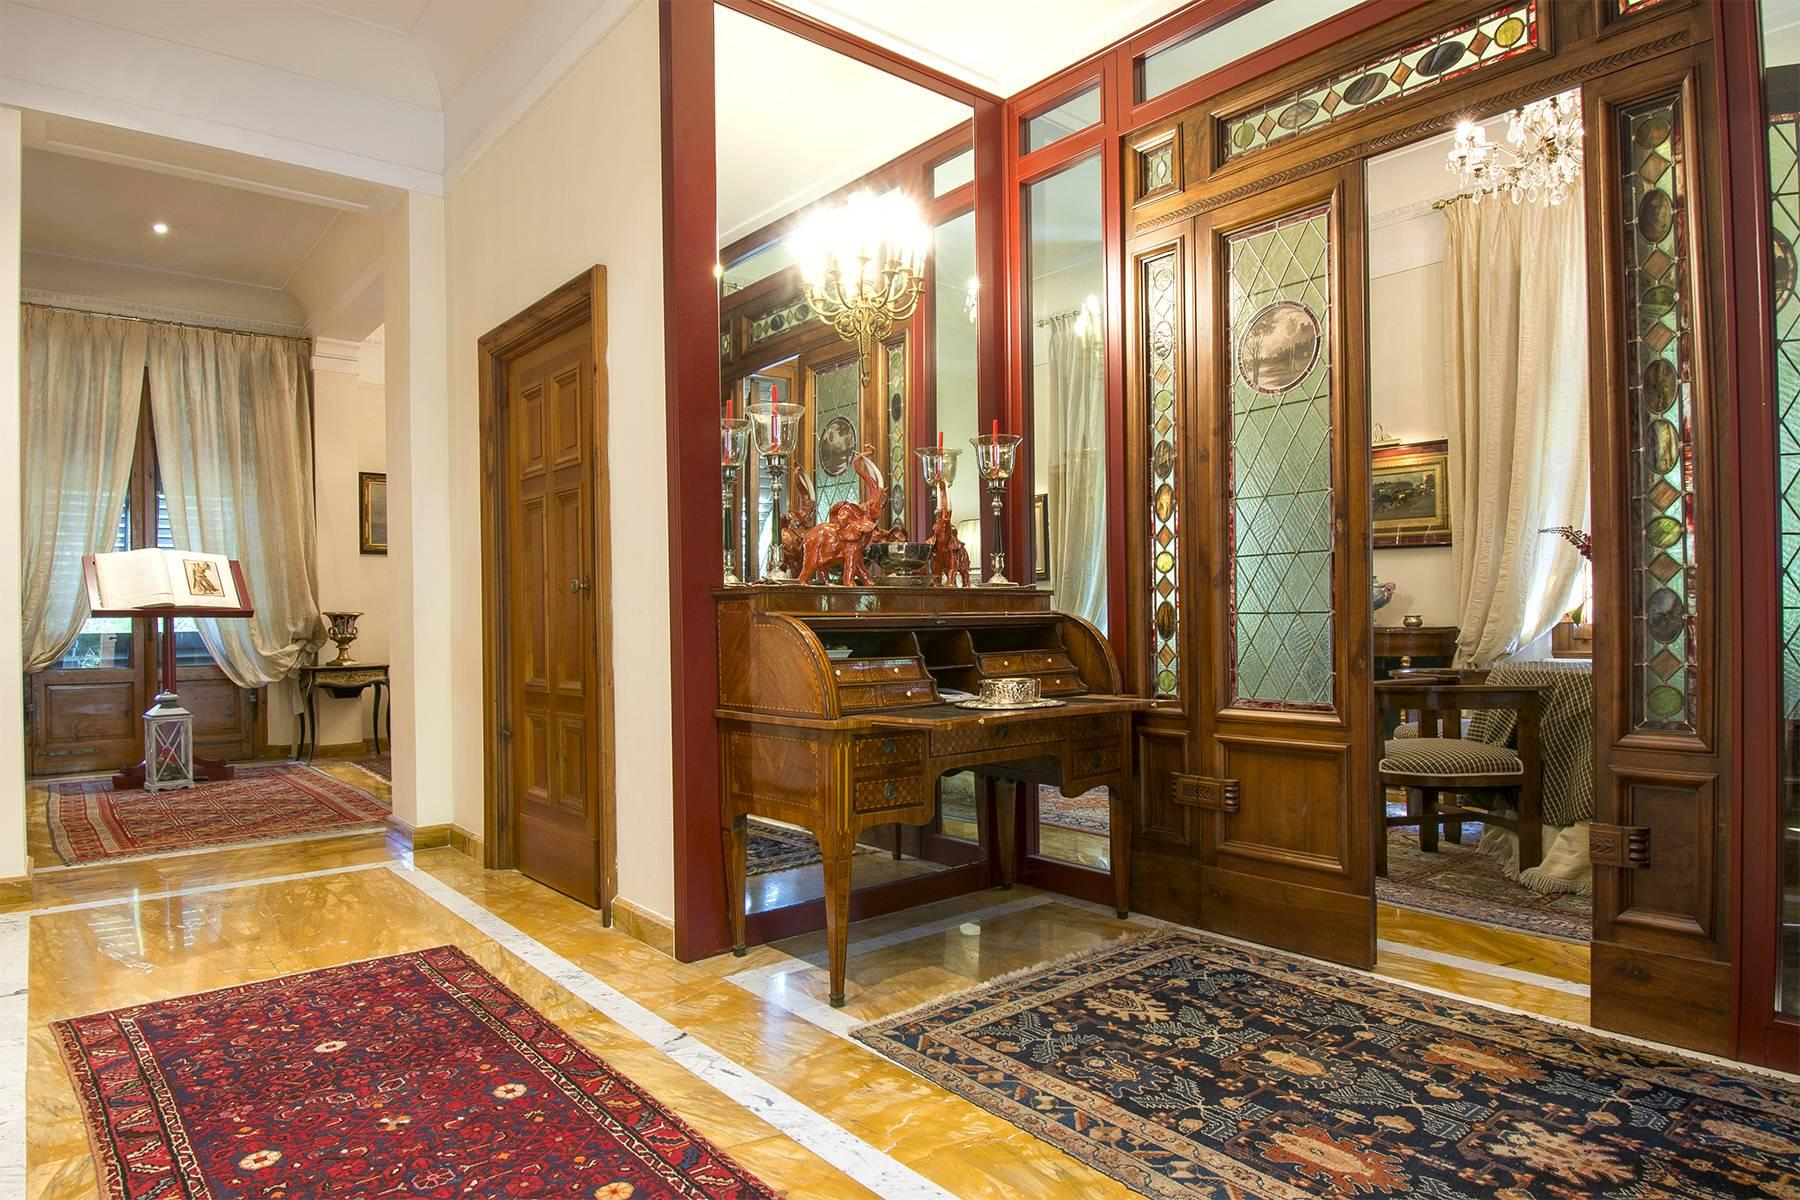 Luxury Art Nouveau Villa in the heart of Montecatini Terme - 12